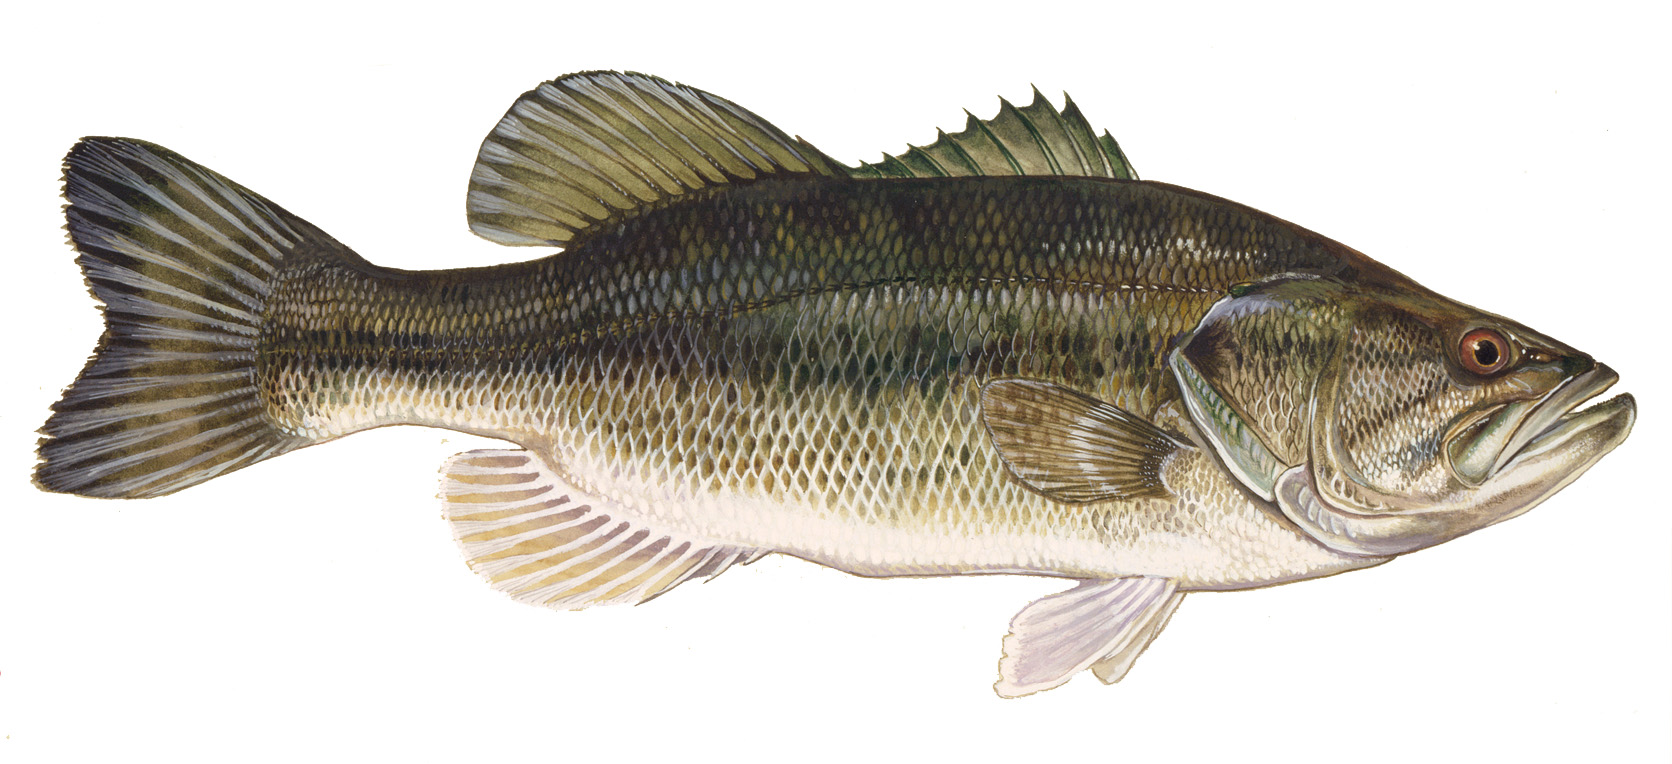 Bass fish photo and wallpaper cute bass fish pictures for Cute freshwater fish